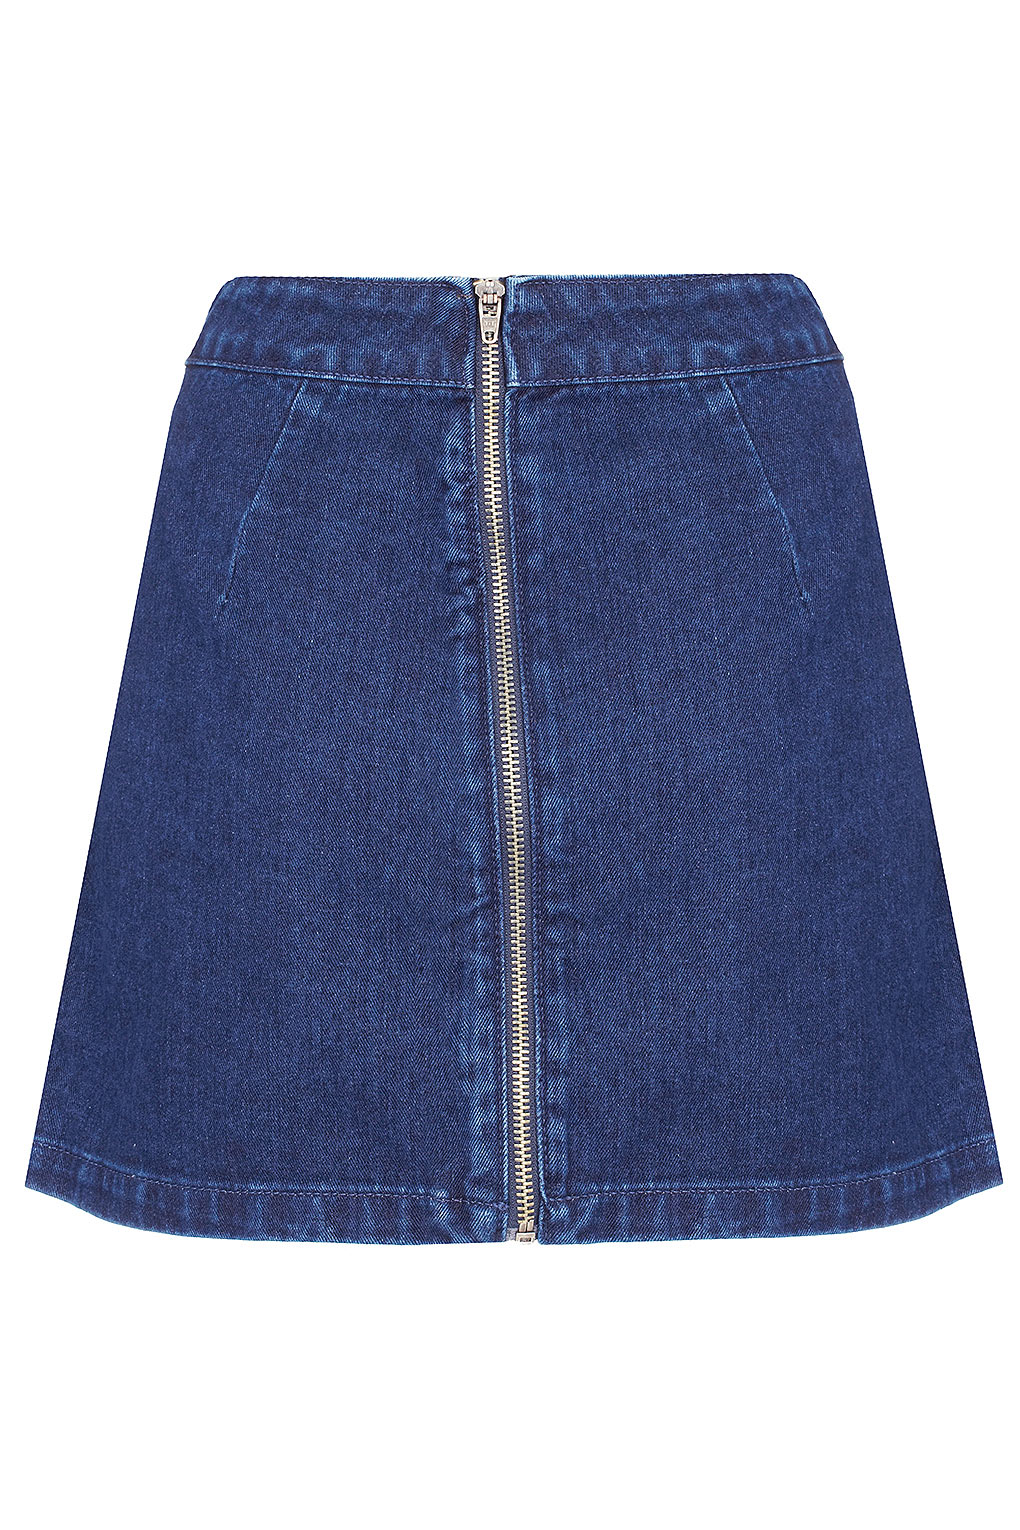 Topshop Moto Aline Denim Skirt in Blue | Lyst